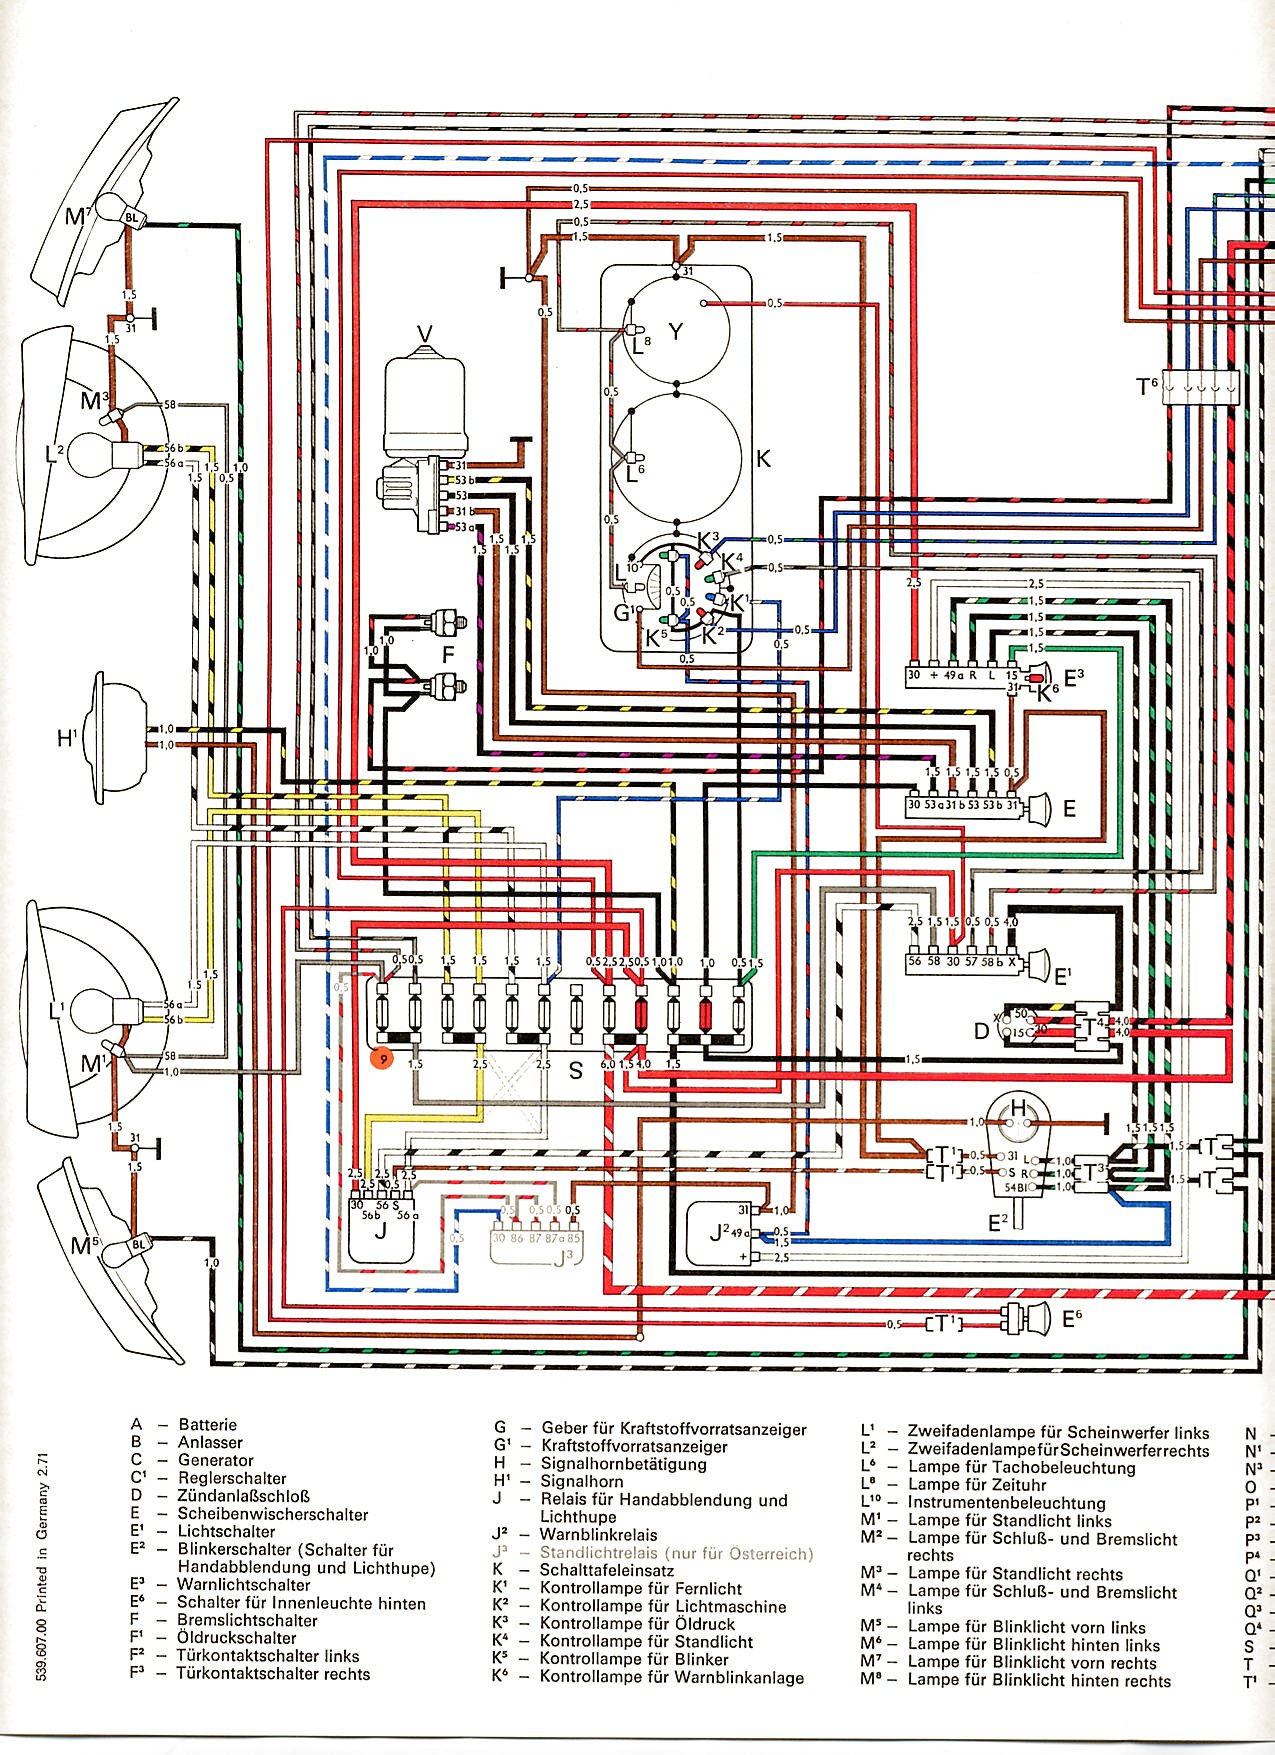 1973 Vw Transporter Bus Wiring Diagram Archive Of Automotive Cadillac Electrical Diagrams Abs Vintagebus Com And Other Rh